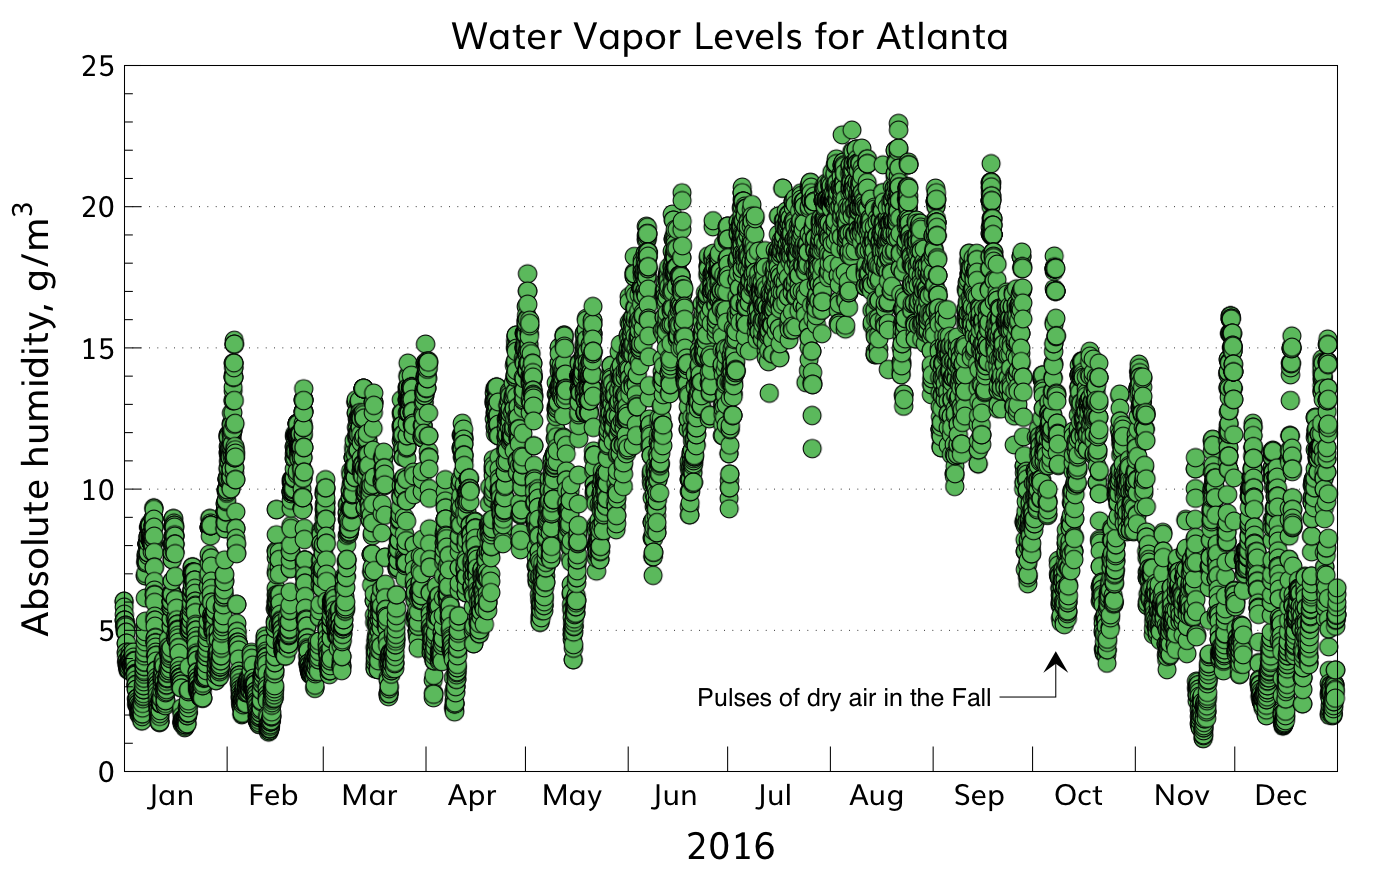 The seasonal variations in the absolute humidities for Atlanta reveal distinct meteorologic events that produce drier outdoor atmospheres and hence drier indoor air as well. Based on hourly temperature and humidity data from US NOAA.